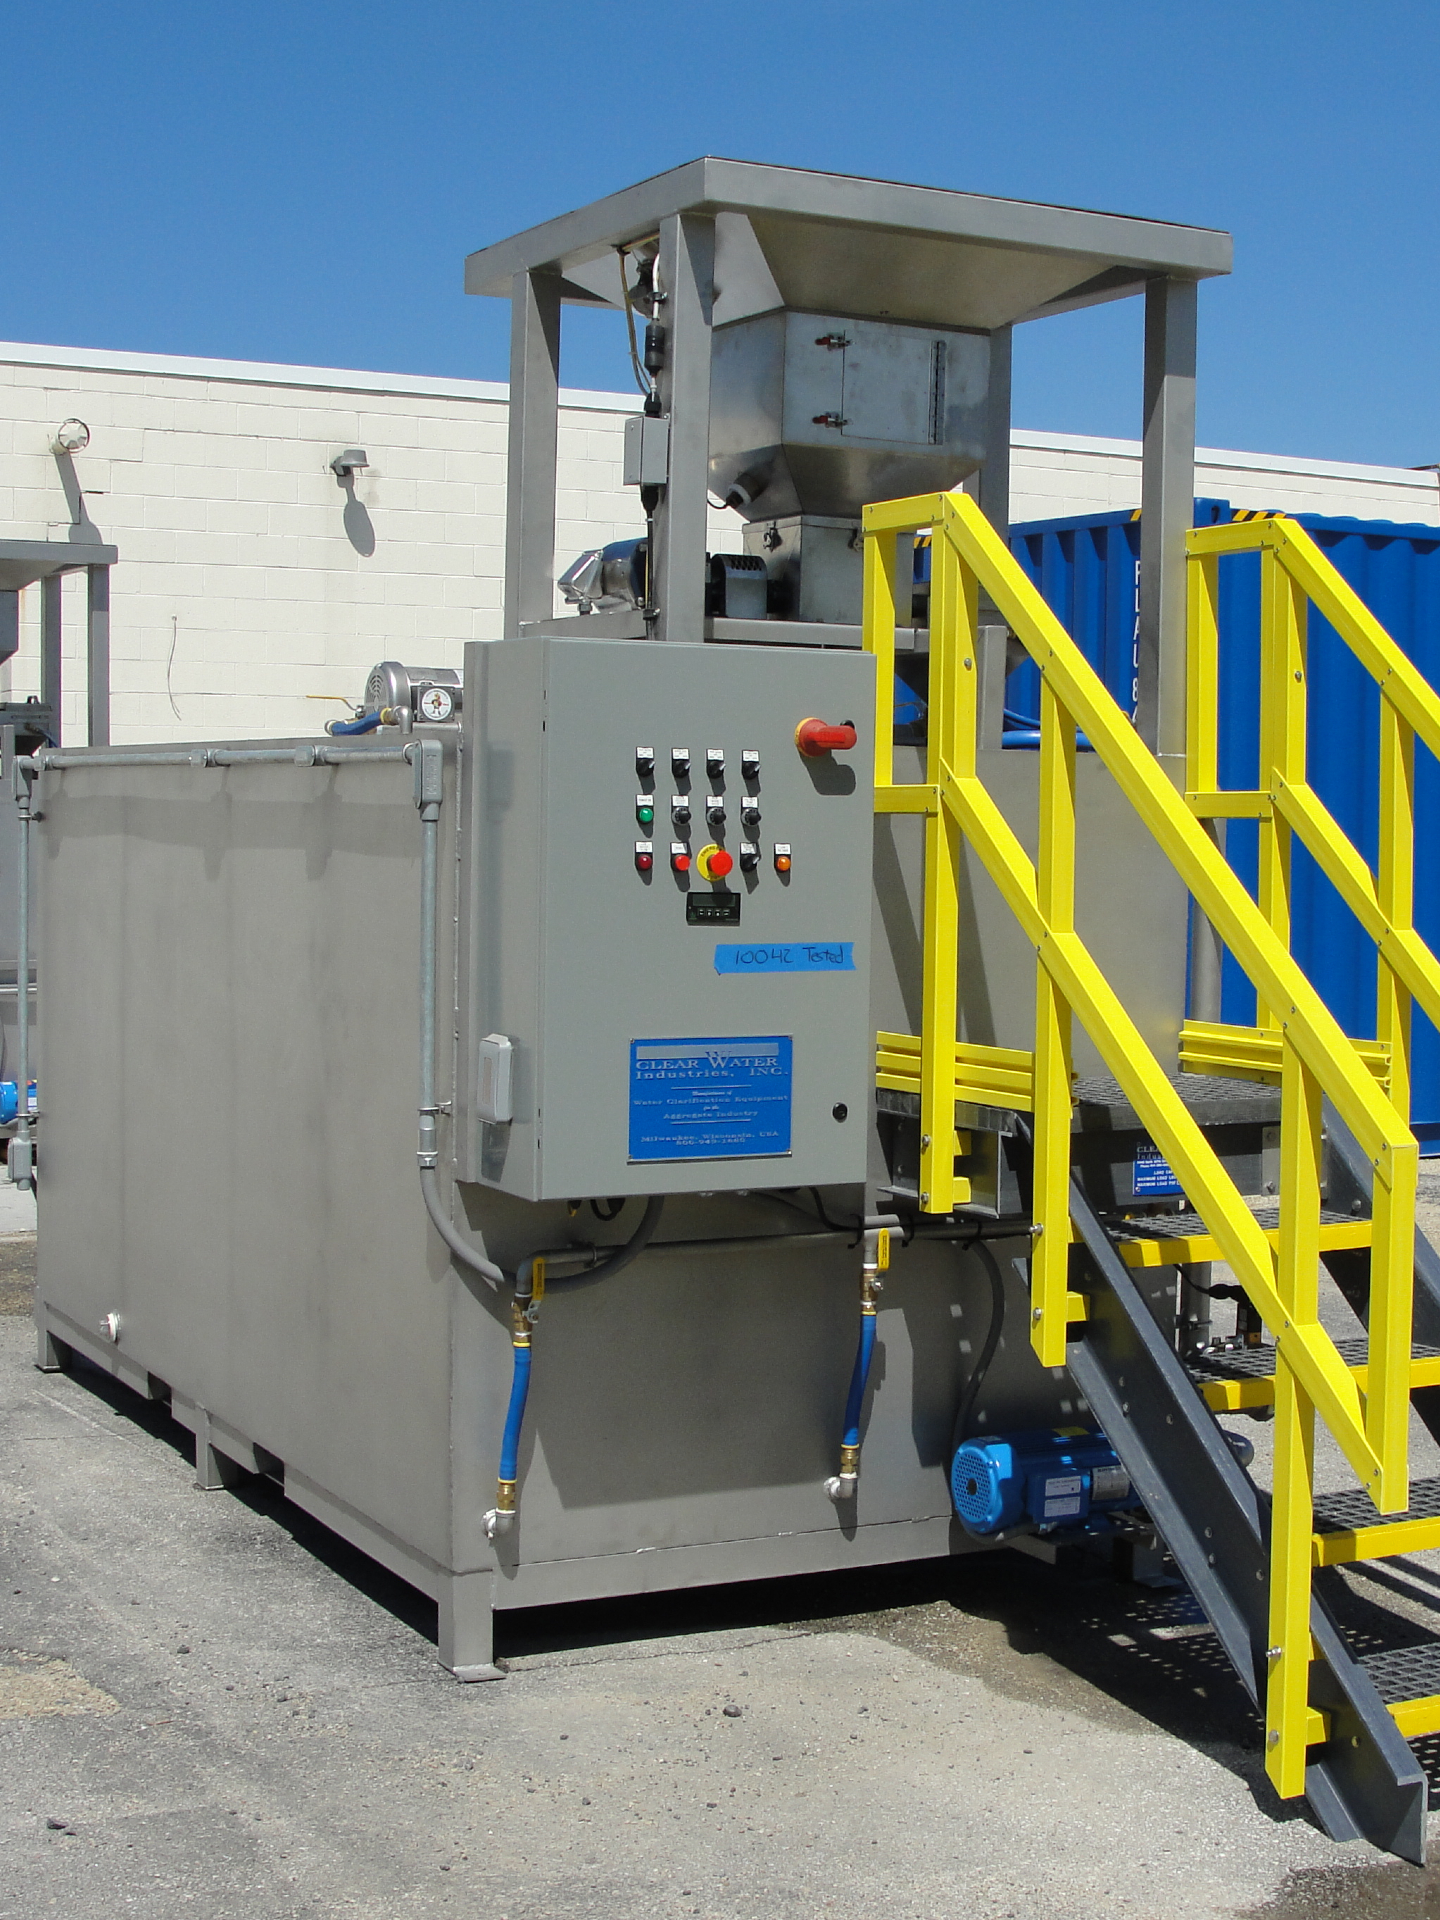 A large stainless steel dry polymer preparation system built to hold 1650 lbs. big bags pictured outside of a building.